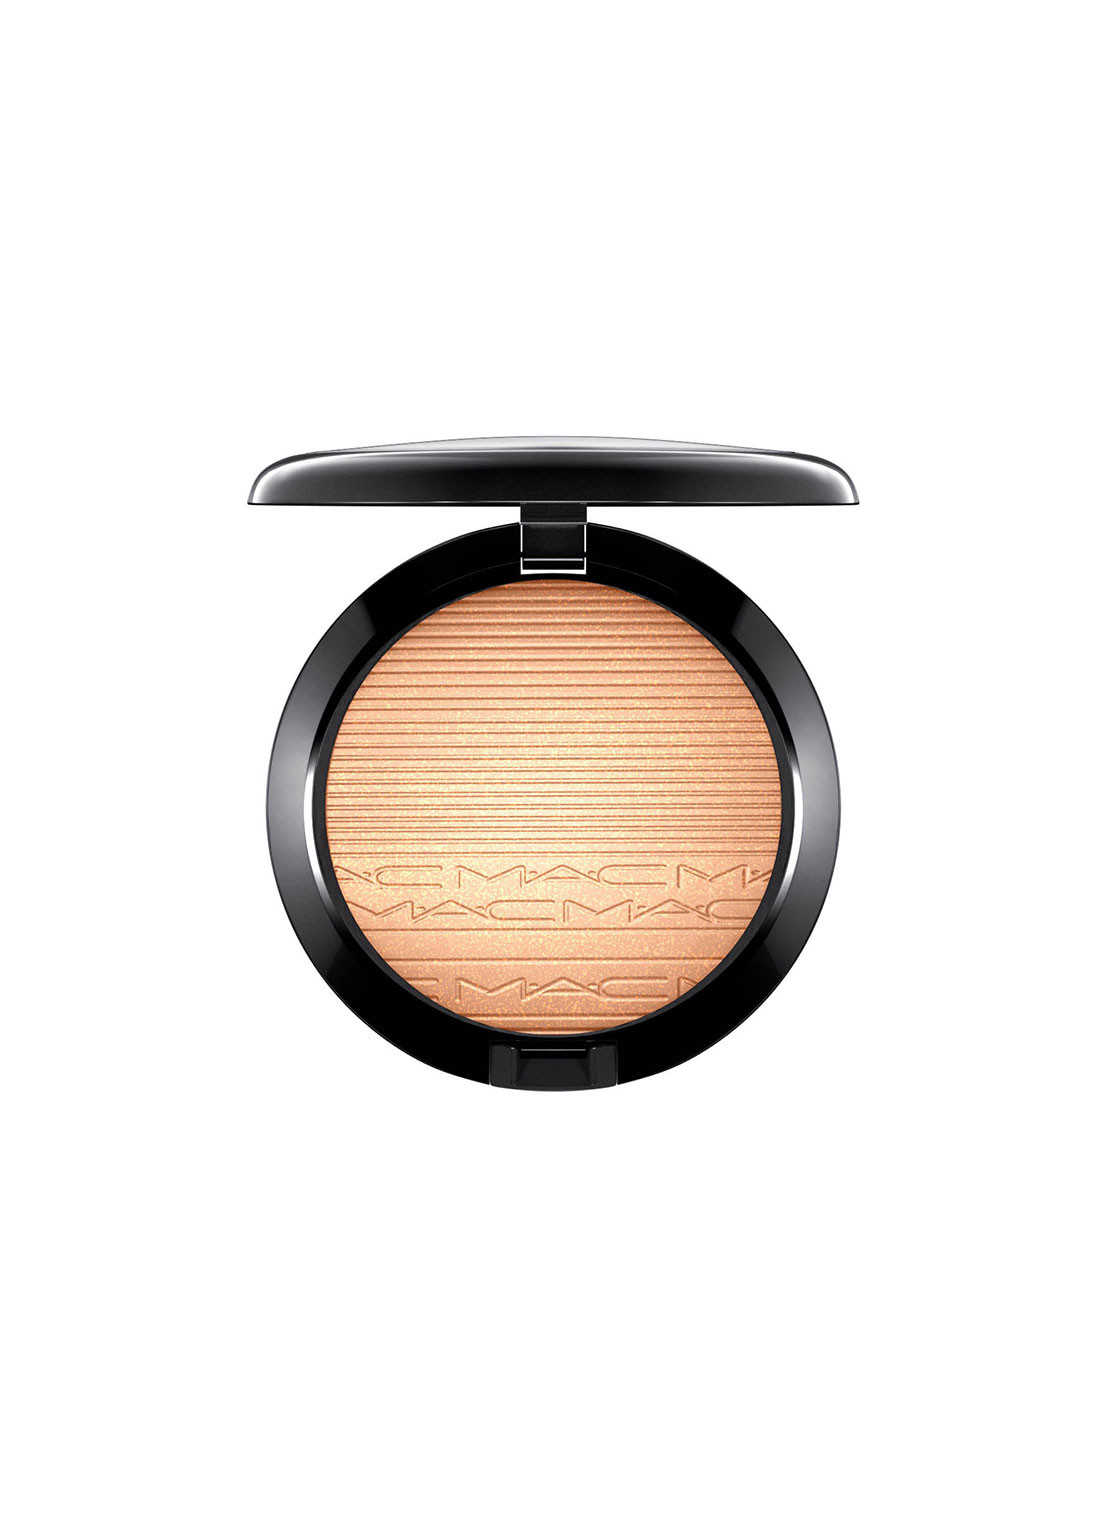 M·A·C Extra Dimension Skinfinish - highlighter